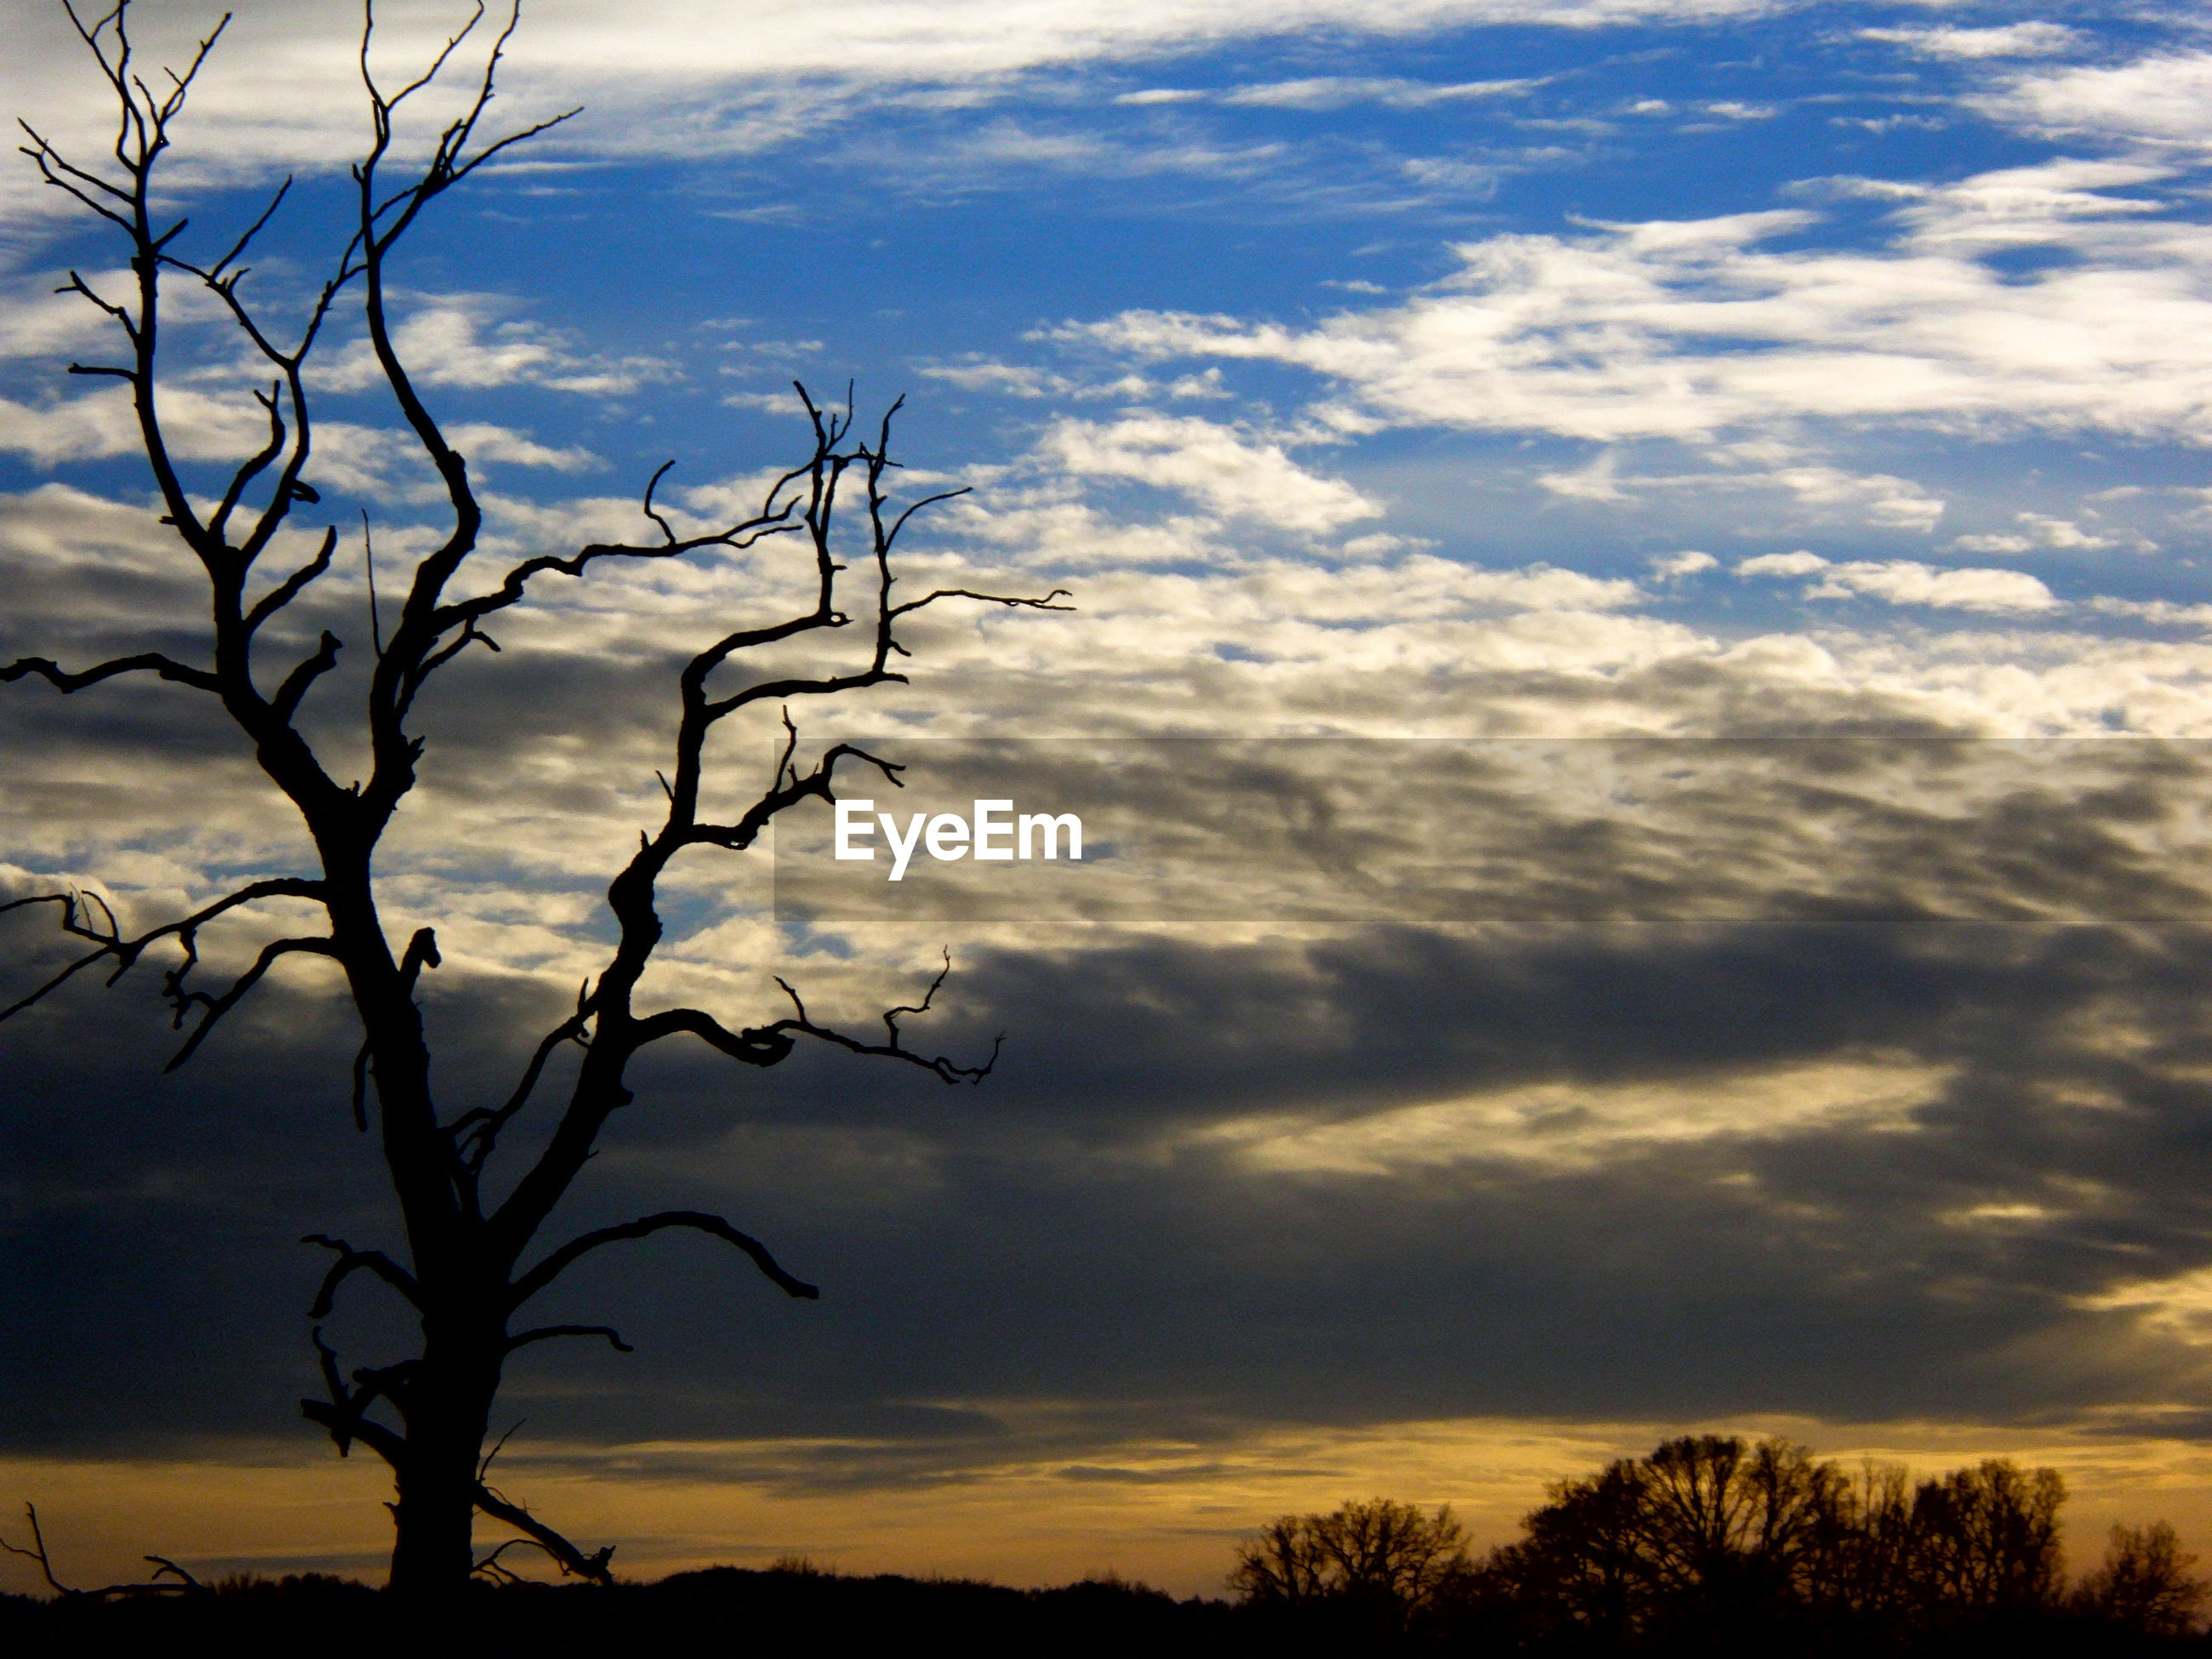 Silhouette bare tree against cloudy sky during sunset